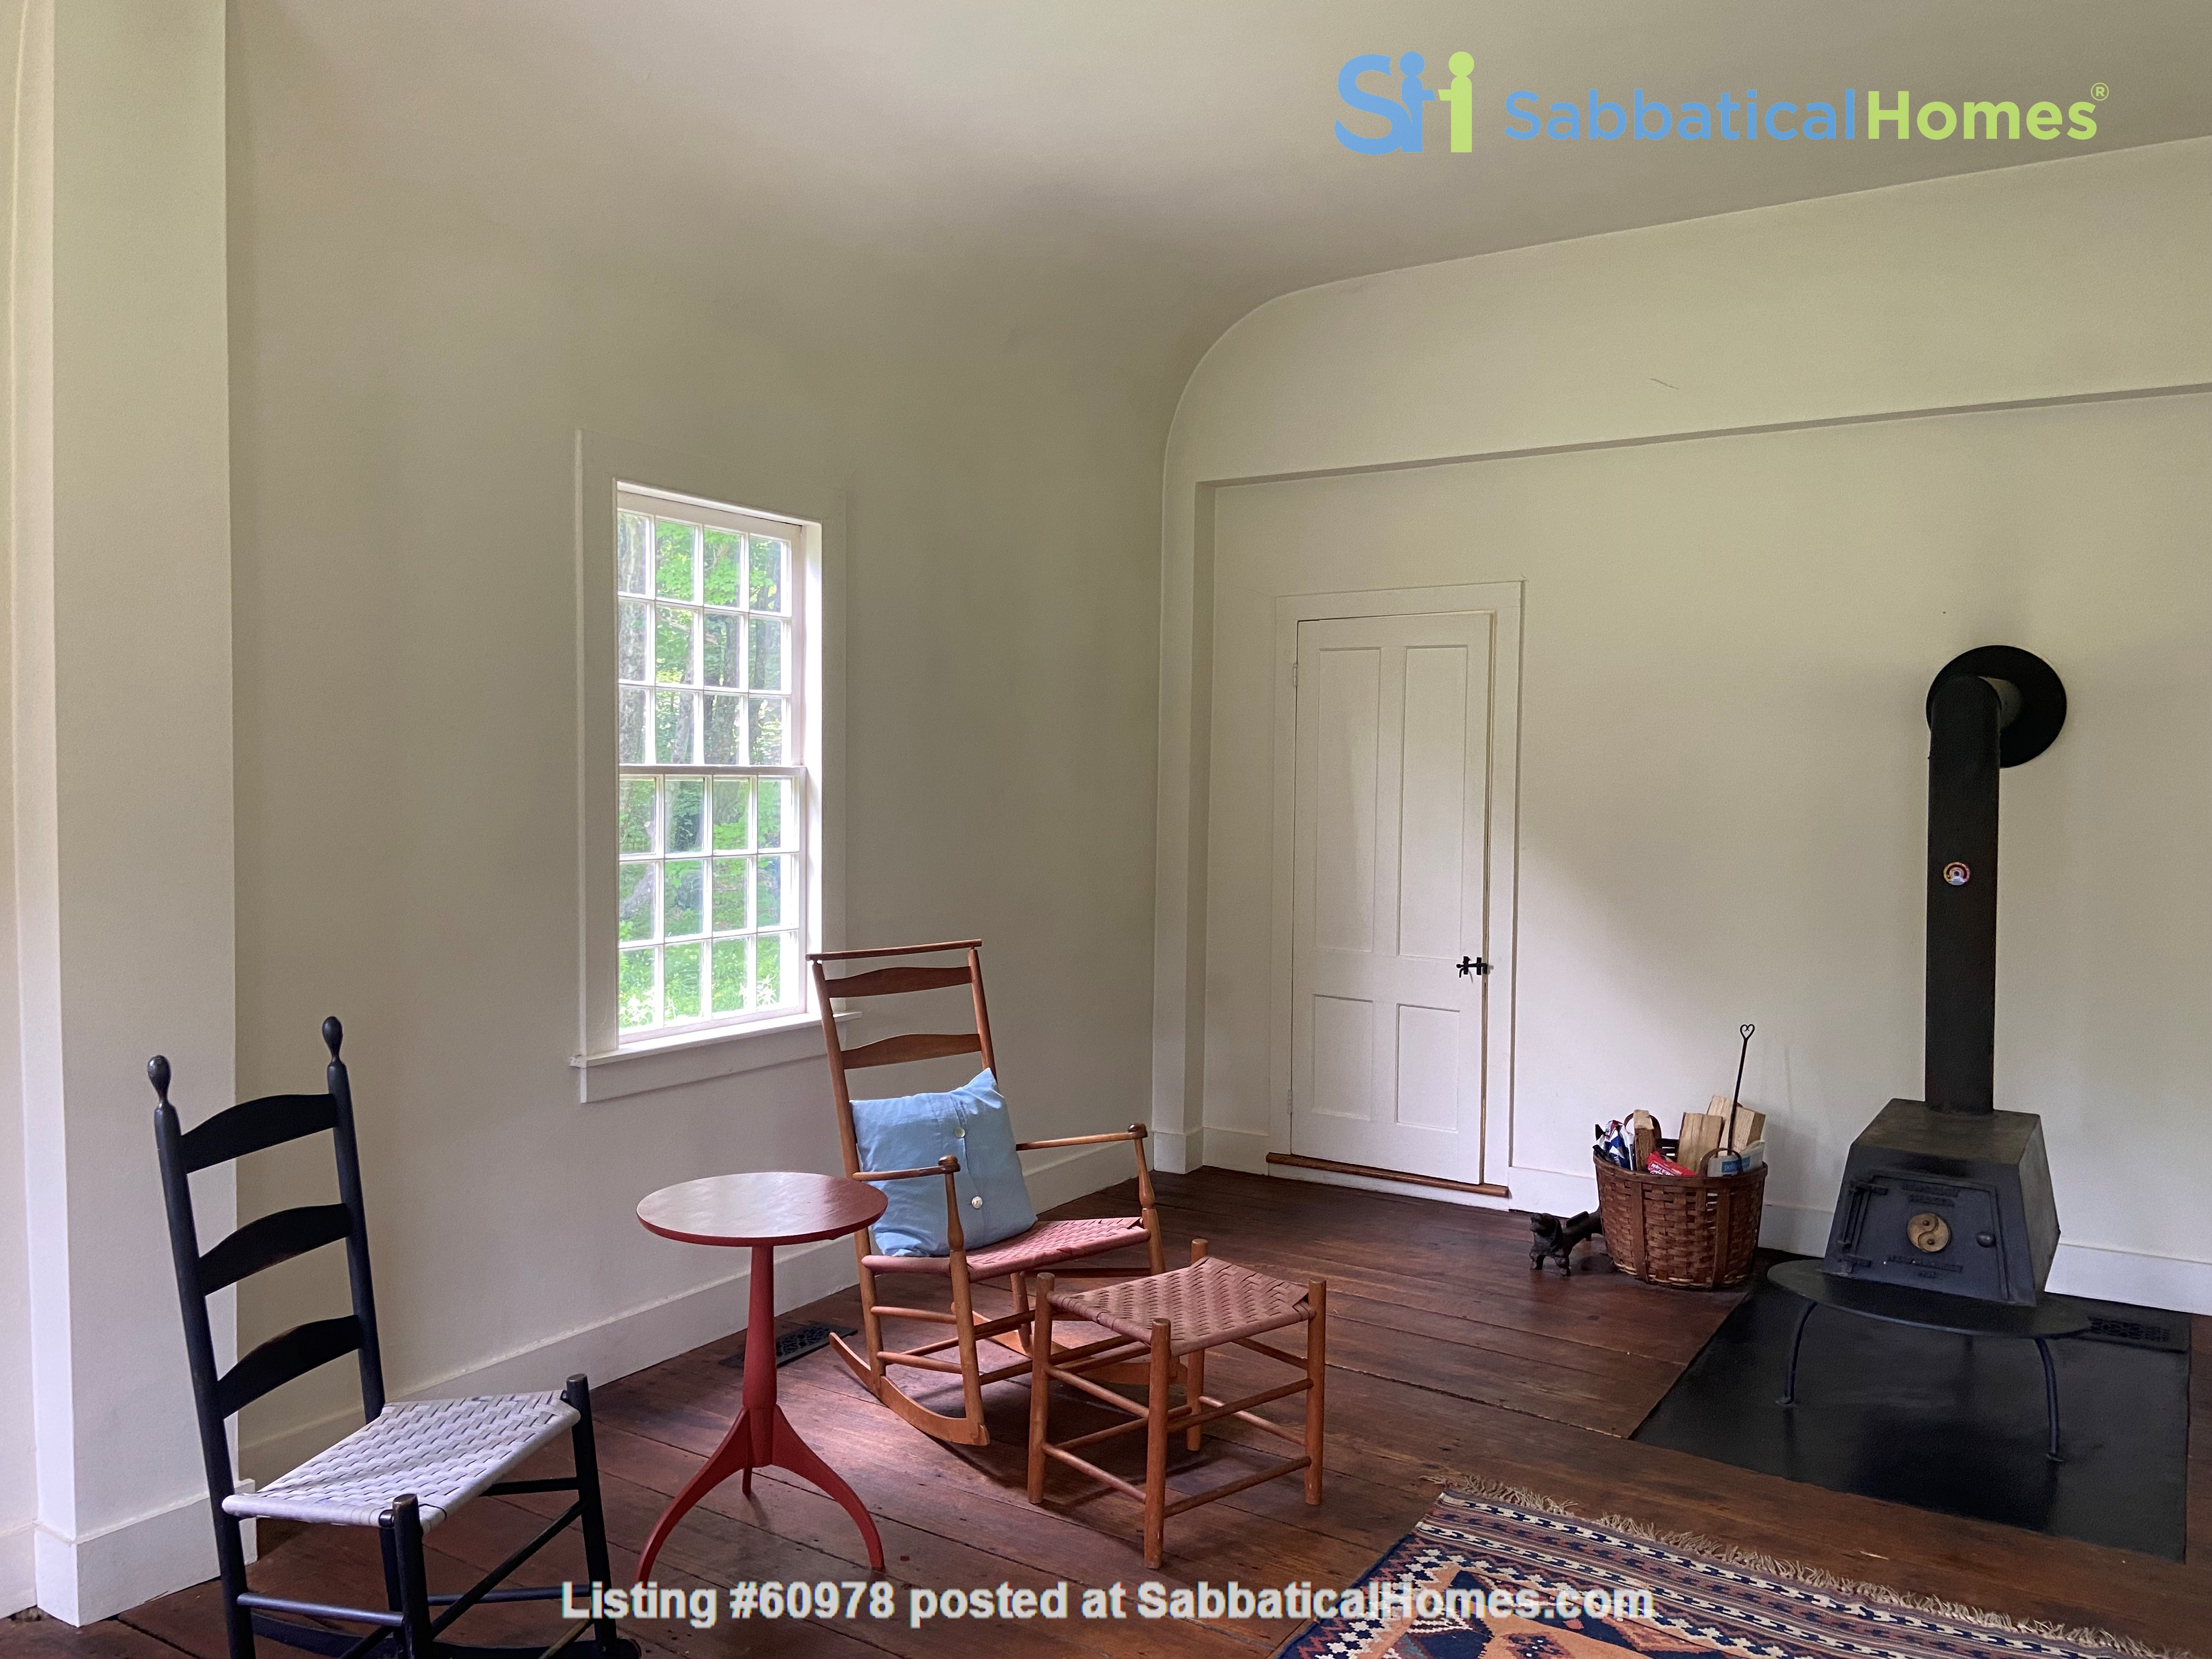 Writer's Retreat -- Idyllic Rural Cabin Home Rental in Cornwall, Connecticut, United States 3